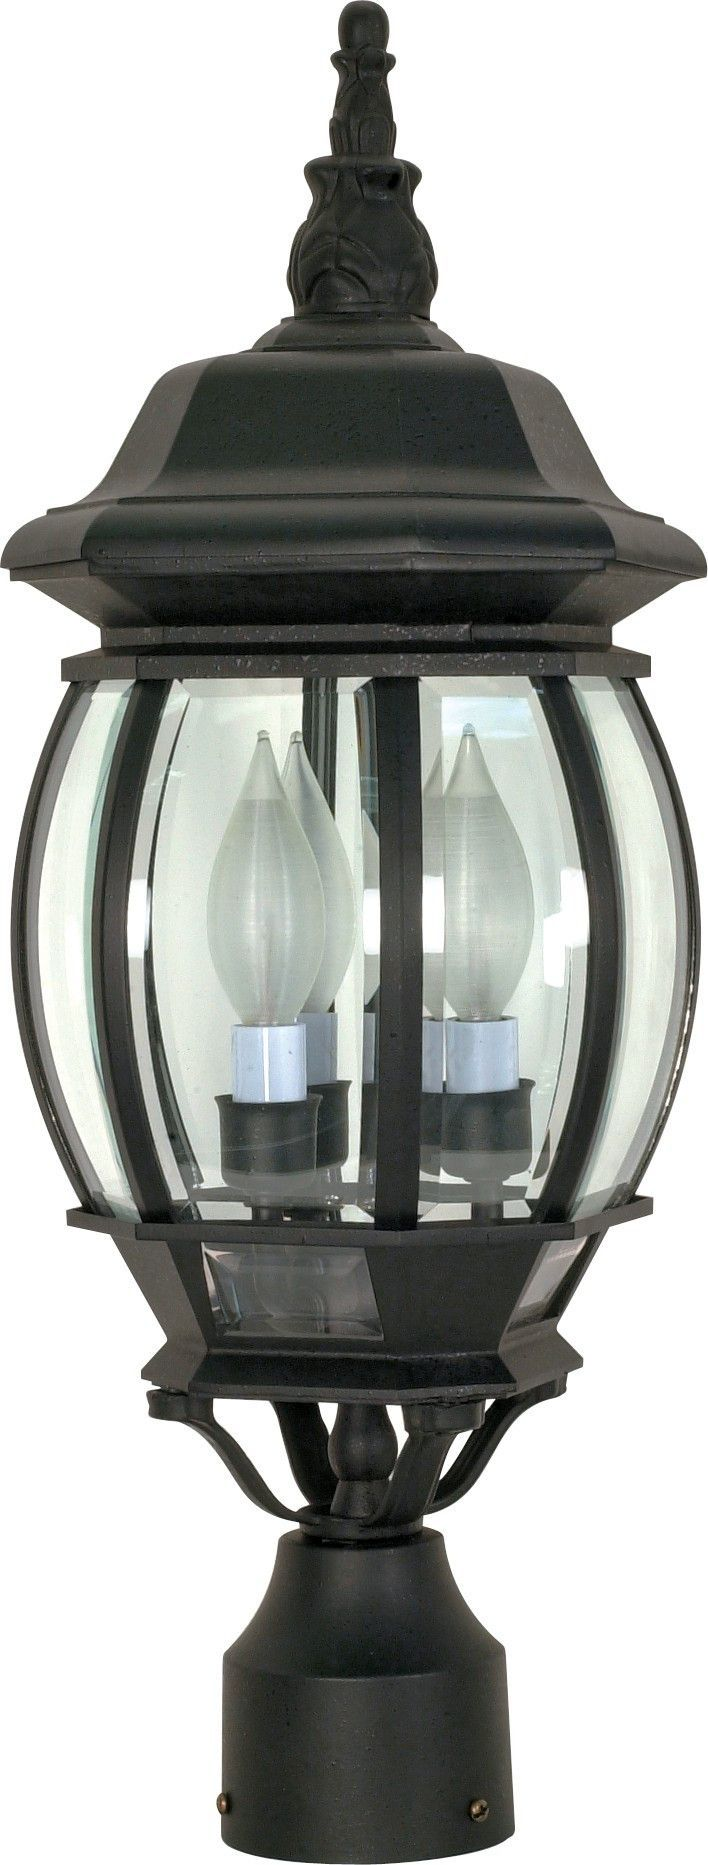 Outdoor Post Lantern in Textured Black Finish